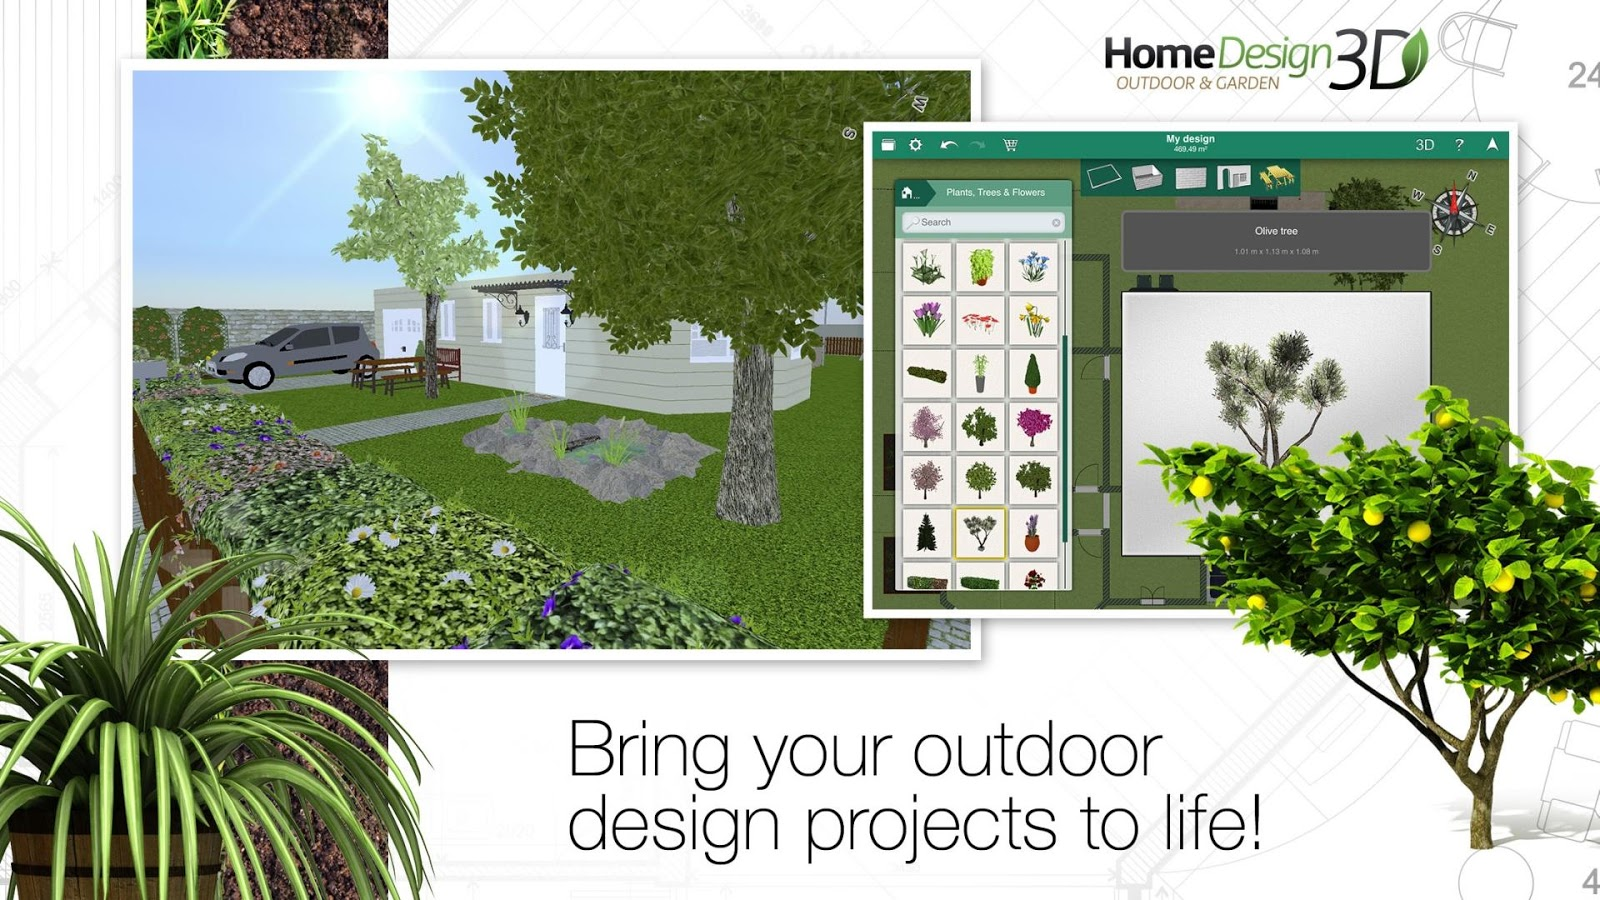 Home design 3d outdoor garden slides into the play store for 3d house app